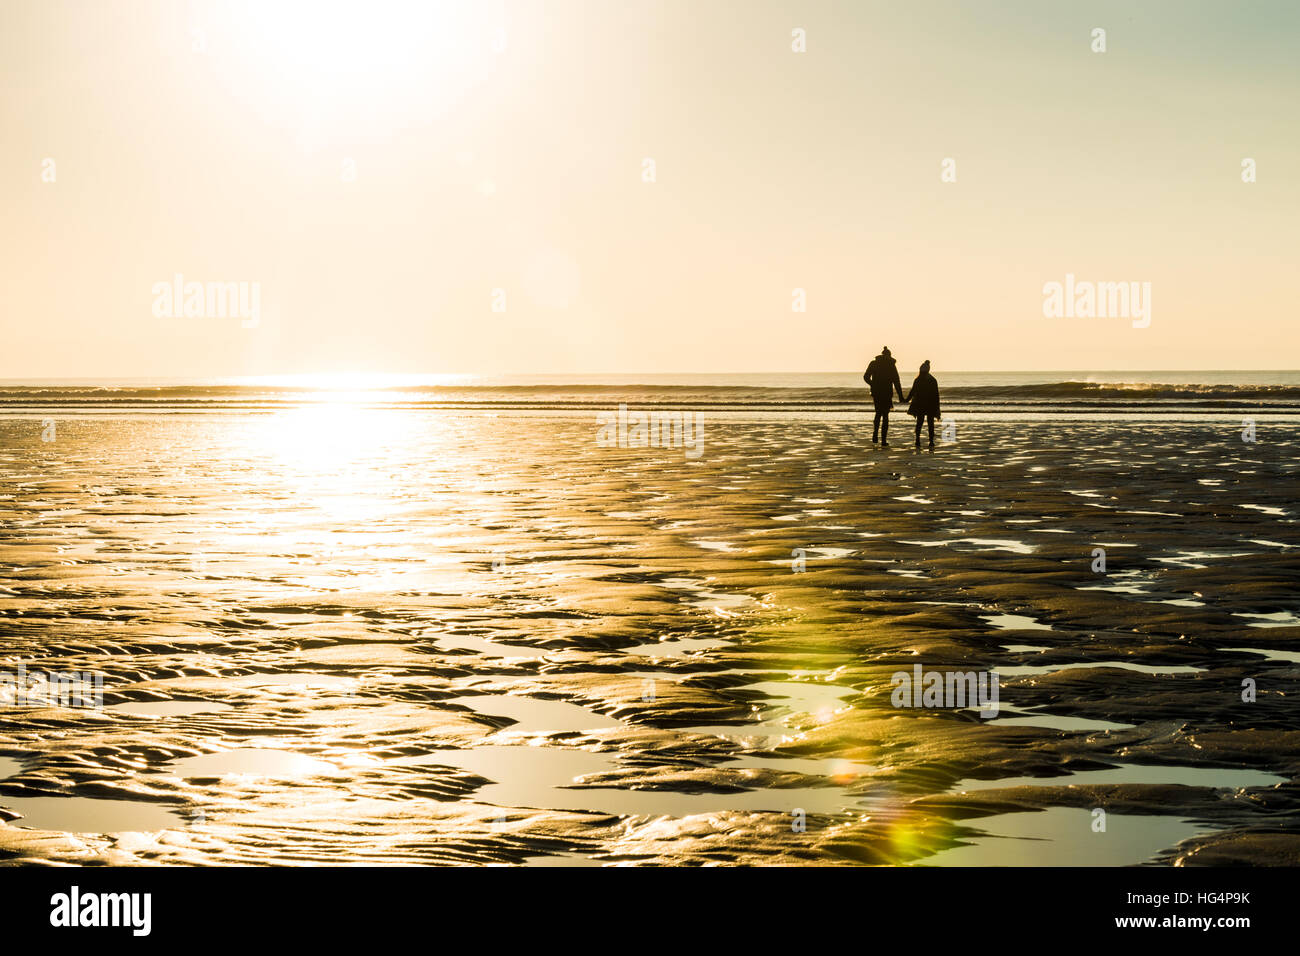 A couple walking on the beach in the evening - Stock Image